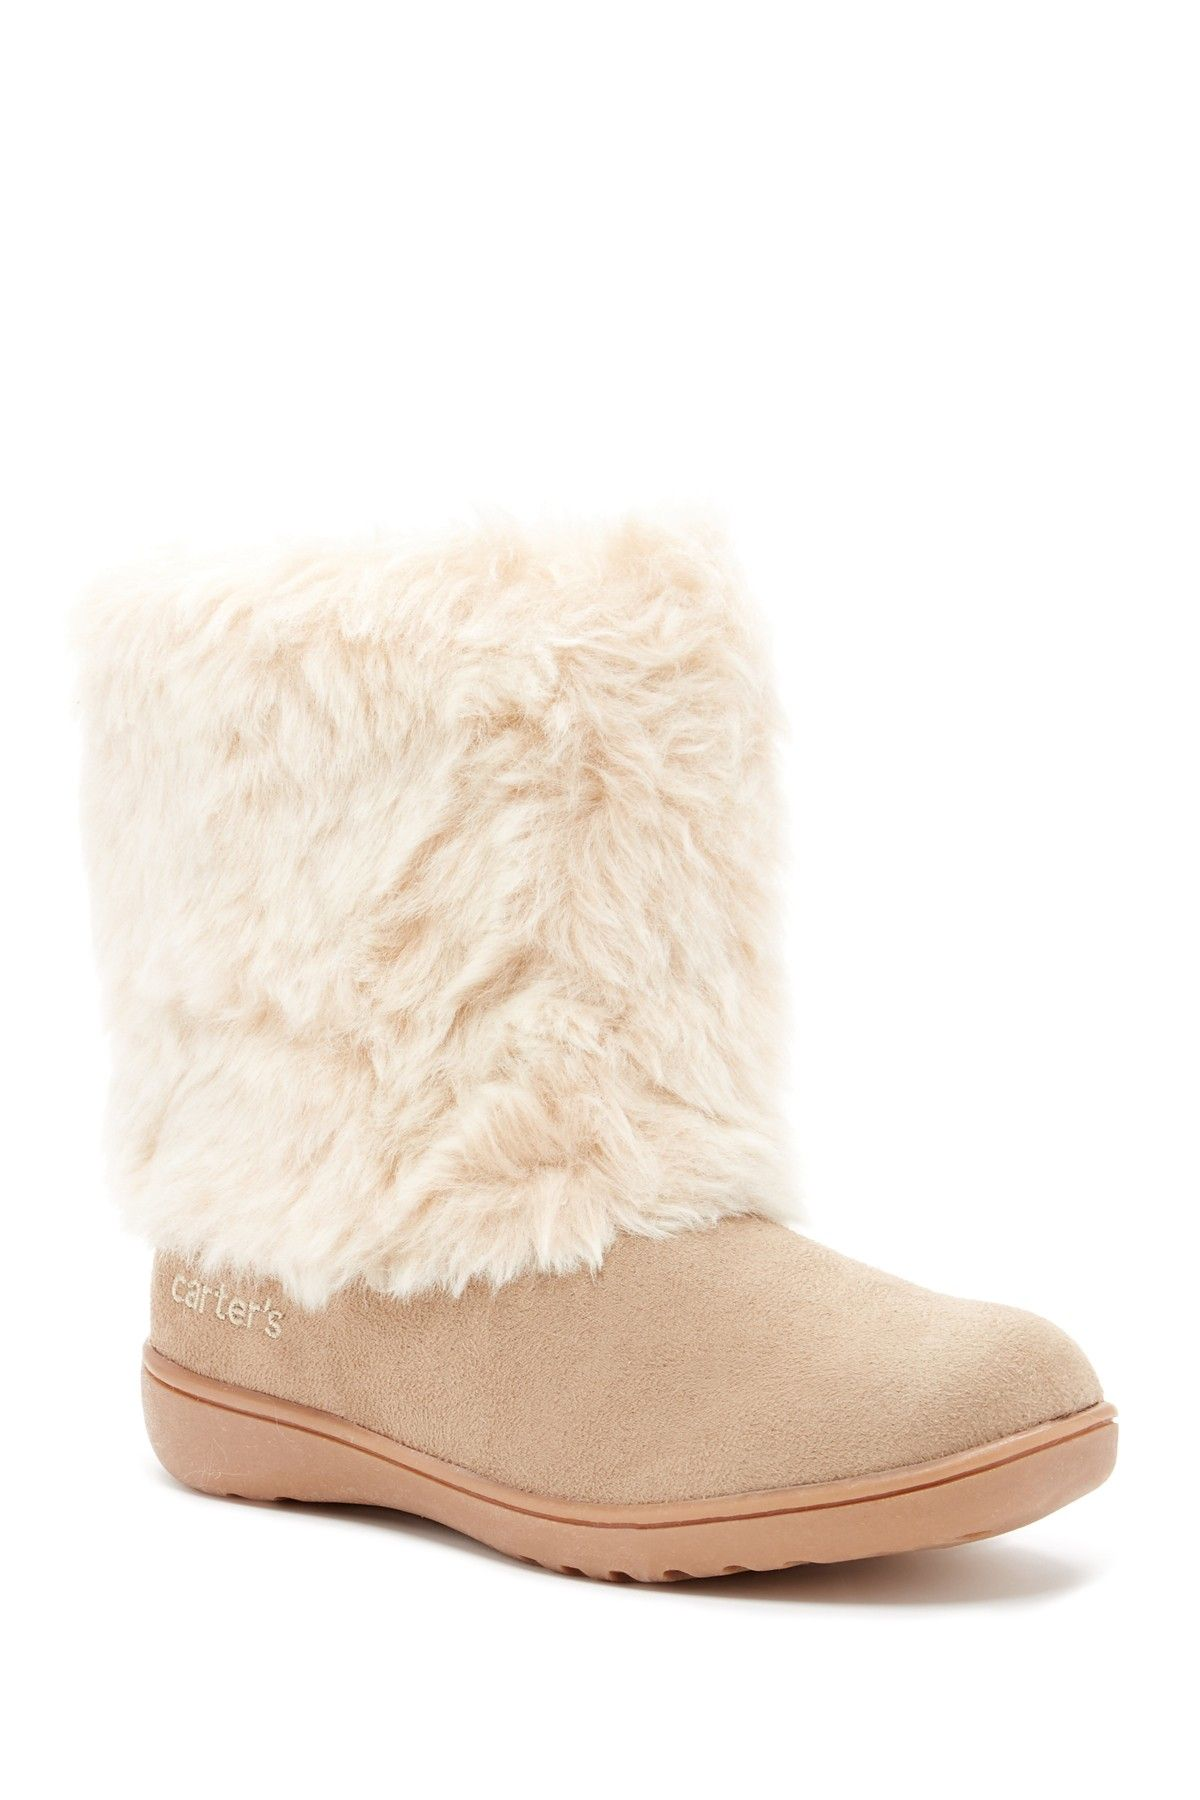 718001107c7 Fluffy Faux Fur Boot (Toddler) | Kids Clothes | Faux fur boots ...